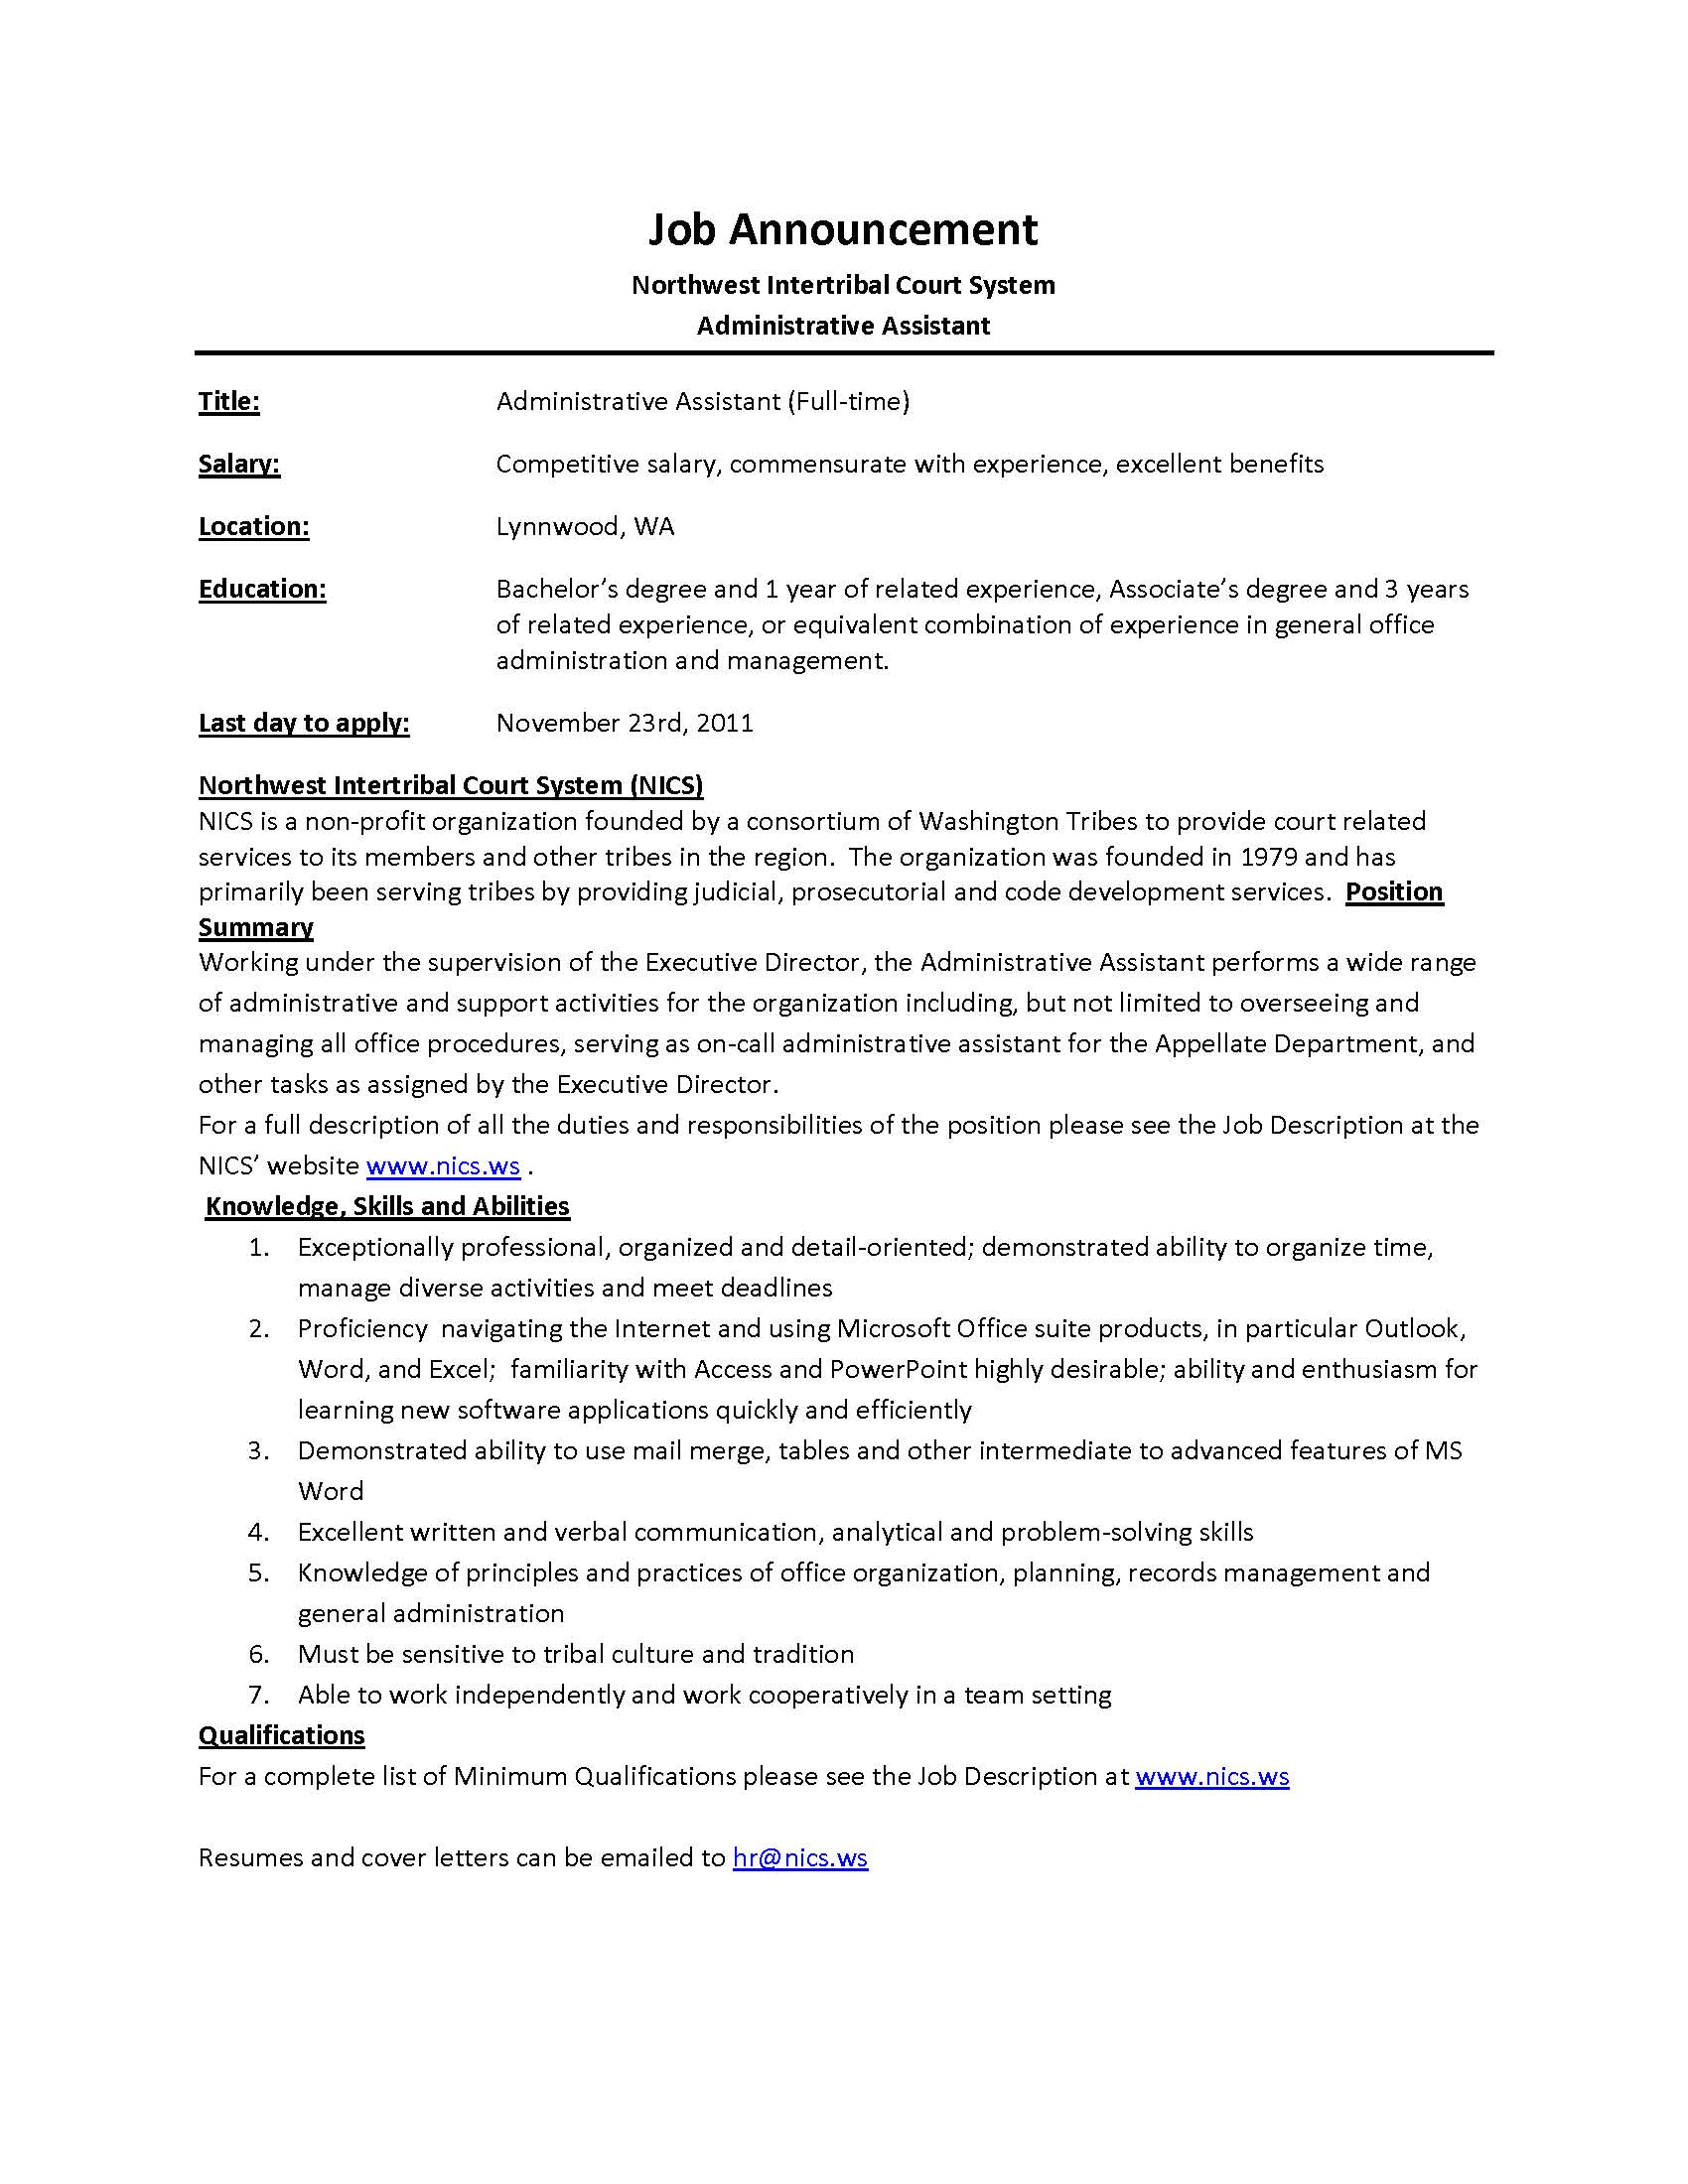 Job-Announcement-NICS-Admin-Assistant administrative assistant sample job description can assist in your creating a job application that will attract job candidates